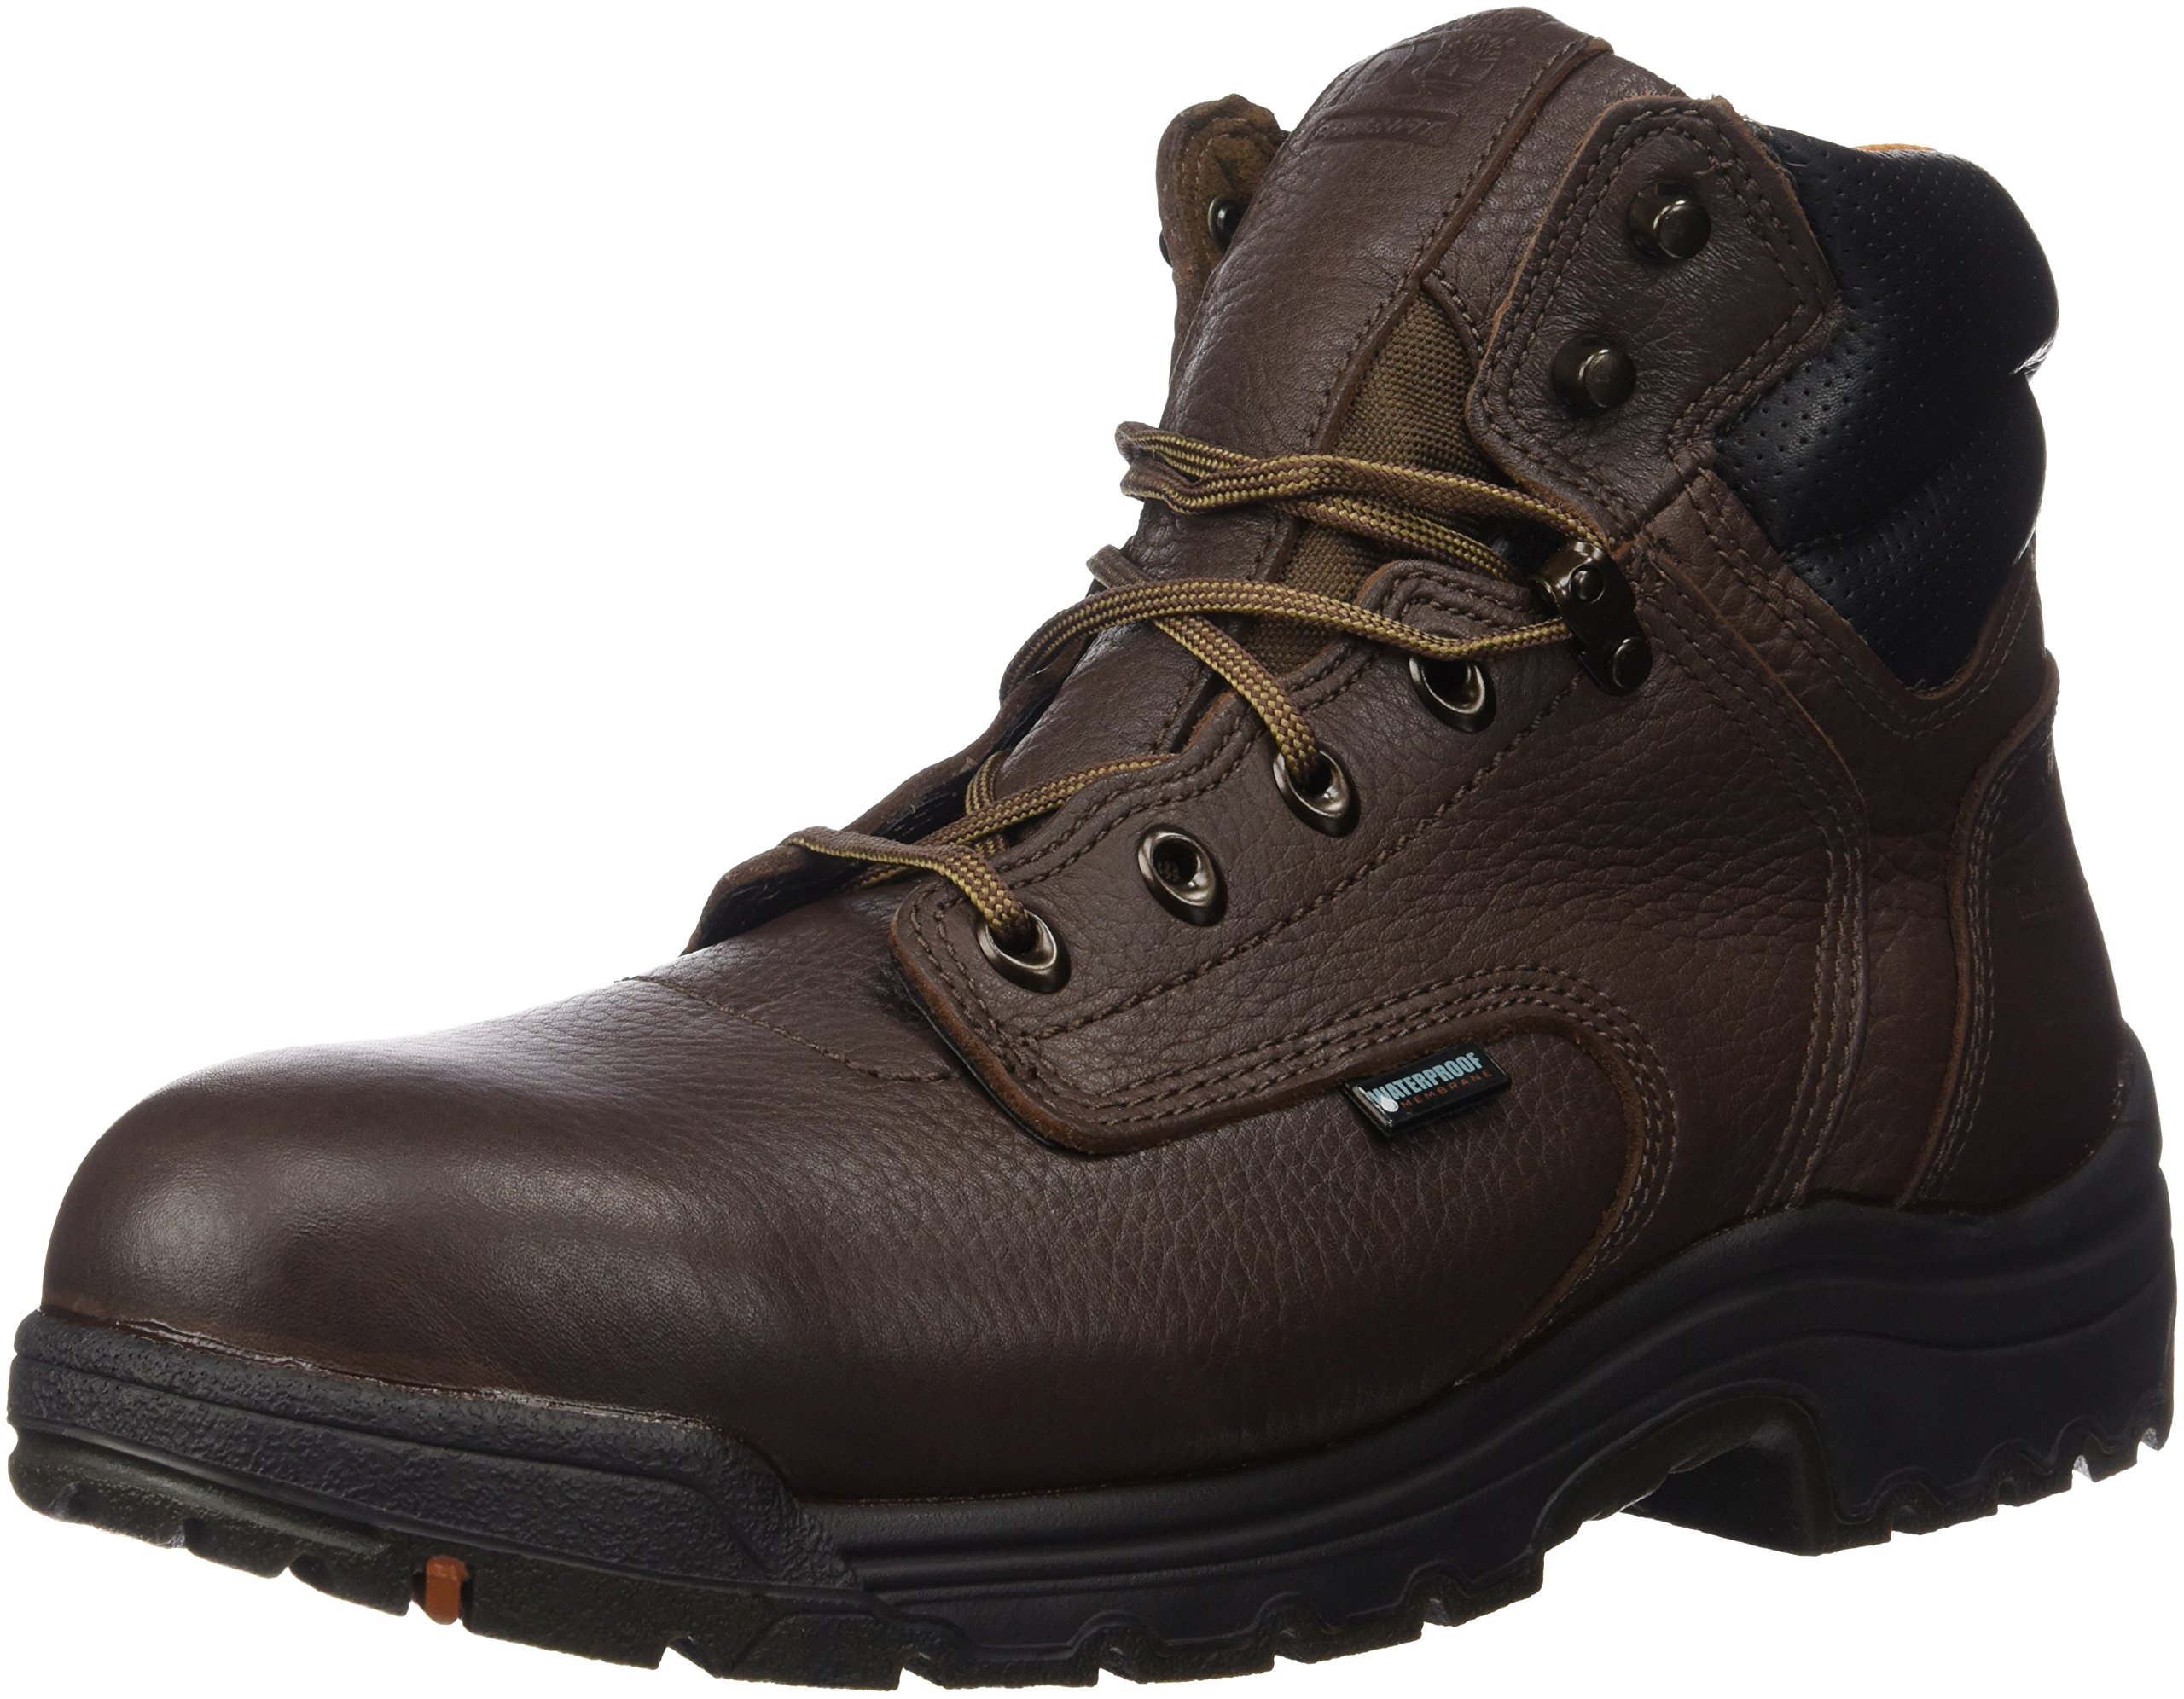 Timberland PRO Men's 26078 Titan 6'' Waterproof Safety-Toe Work Boot,Dark Mocha,12 M